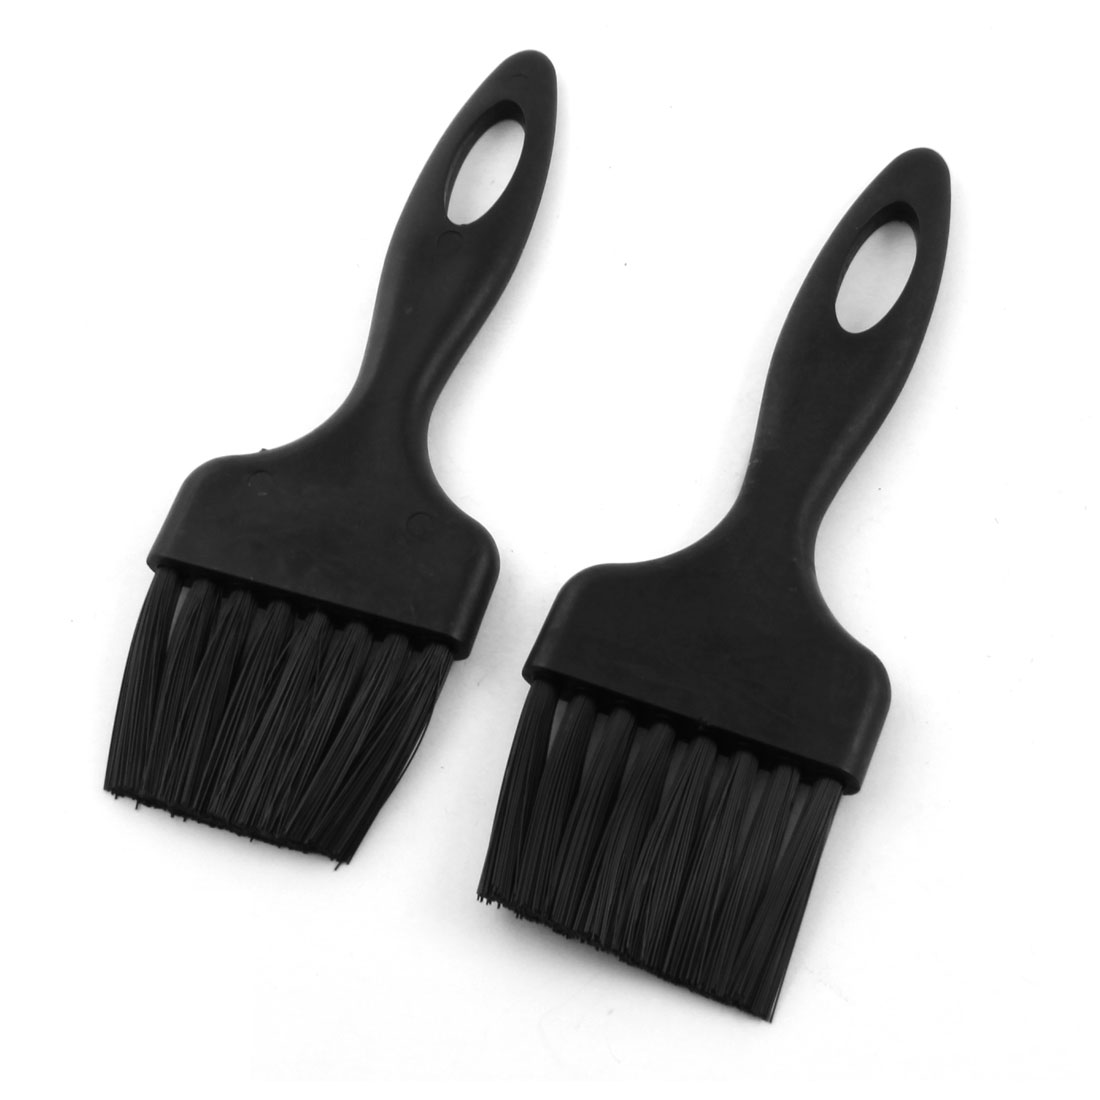 2Pcs PCB Motherboards Rework Cleaning Tool Black Straight Plastic Handle ESD Anti Static Brush Comb